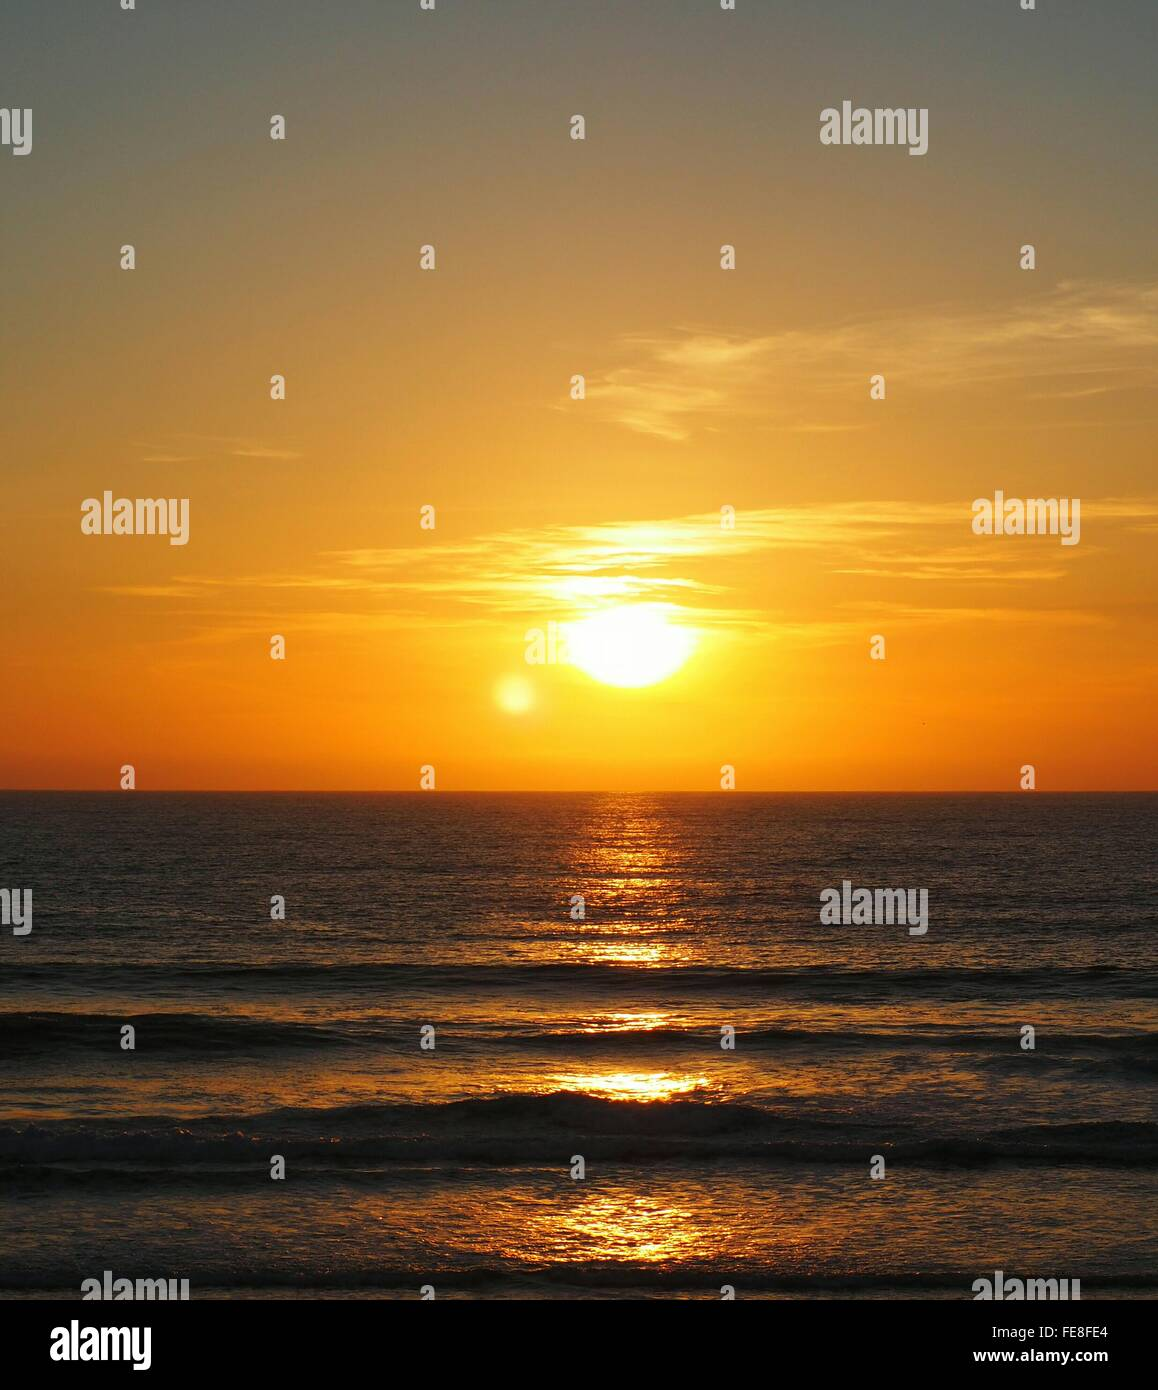 View Of Sea During Sunrise - Stock Image